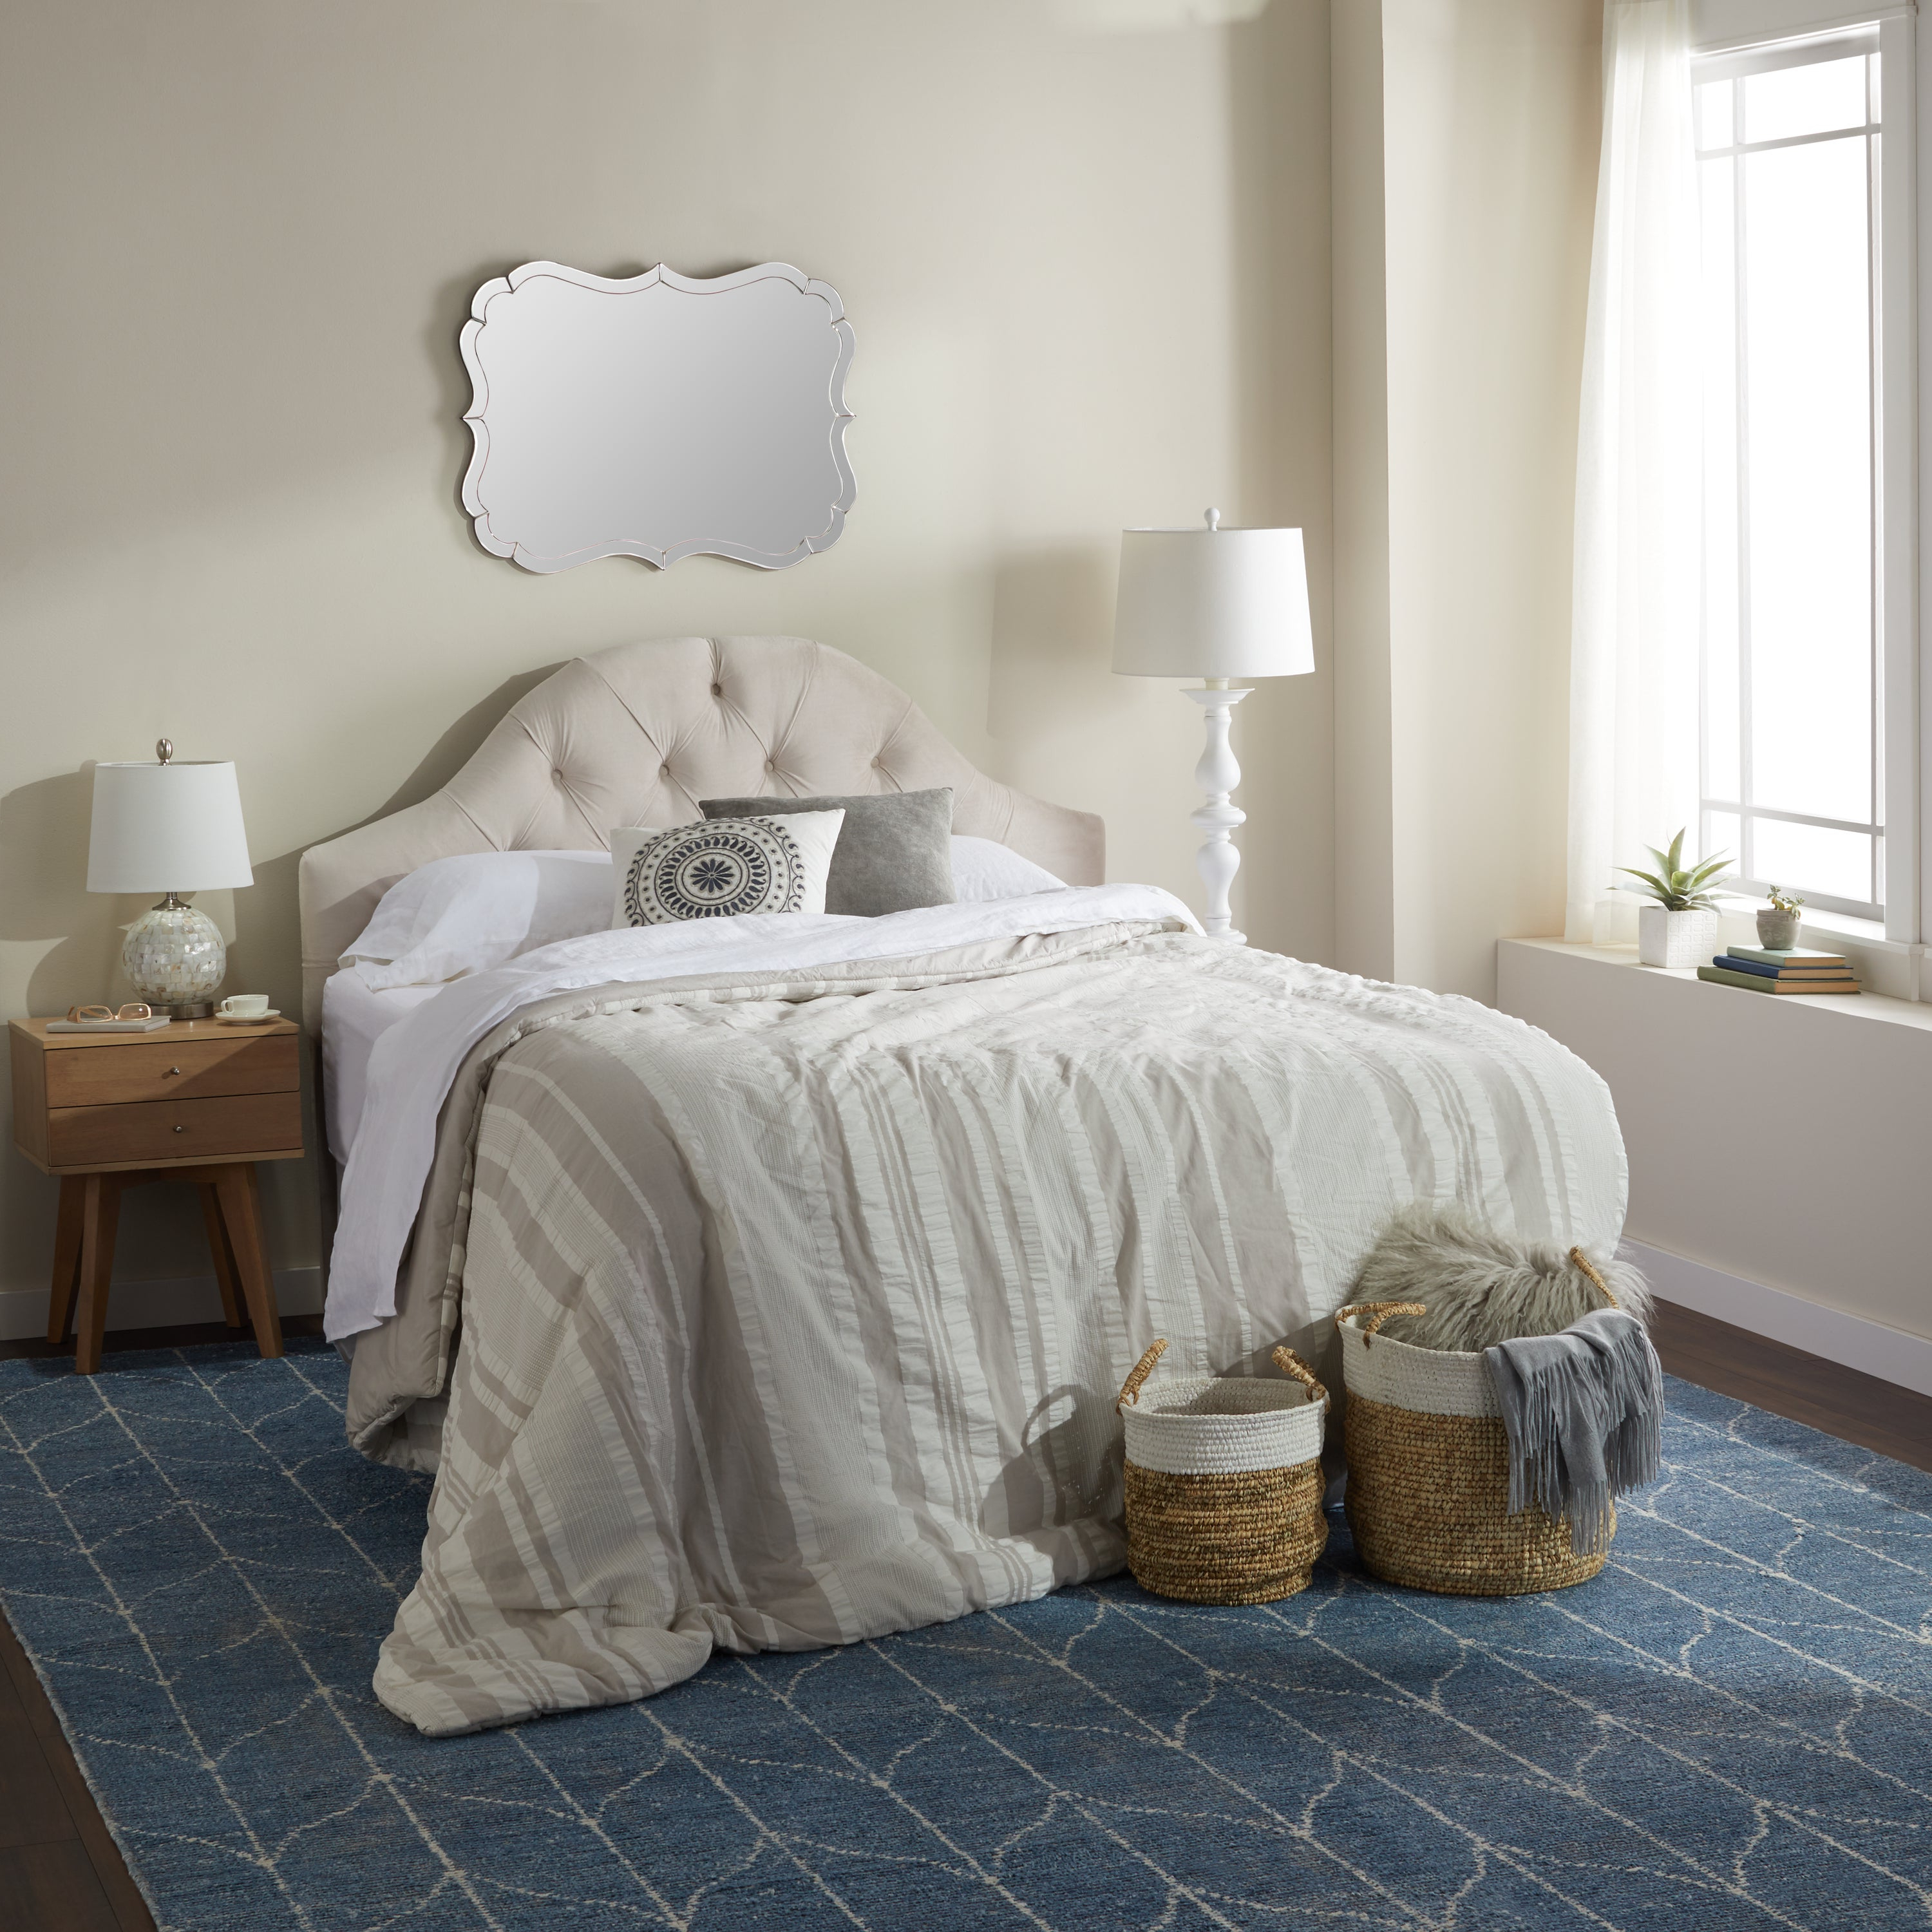 Bedroom Wall Mirrors With Favorite Abbyson Olivia Rectangle Wall Mirror – Silver (View 6 of 20)